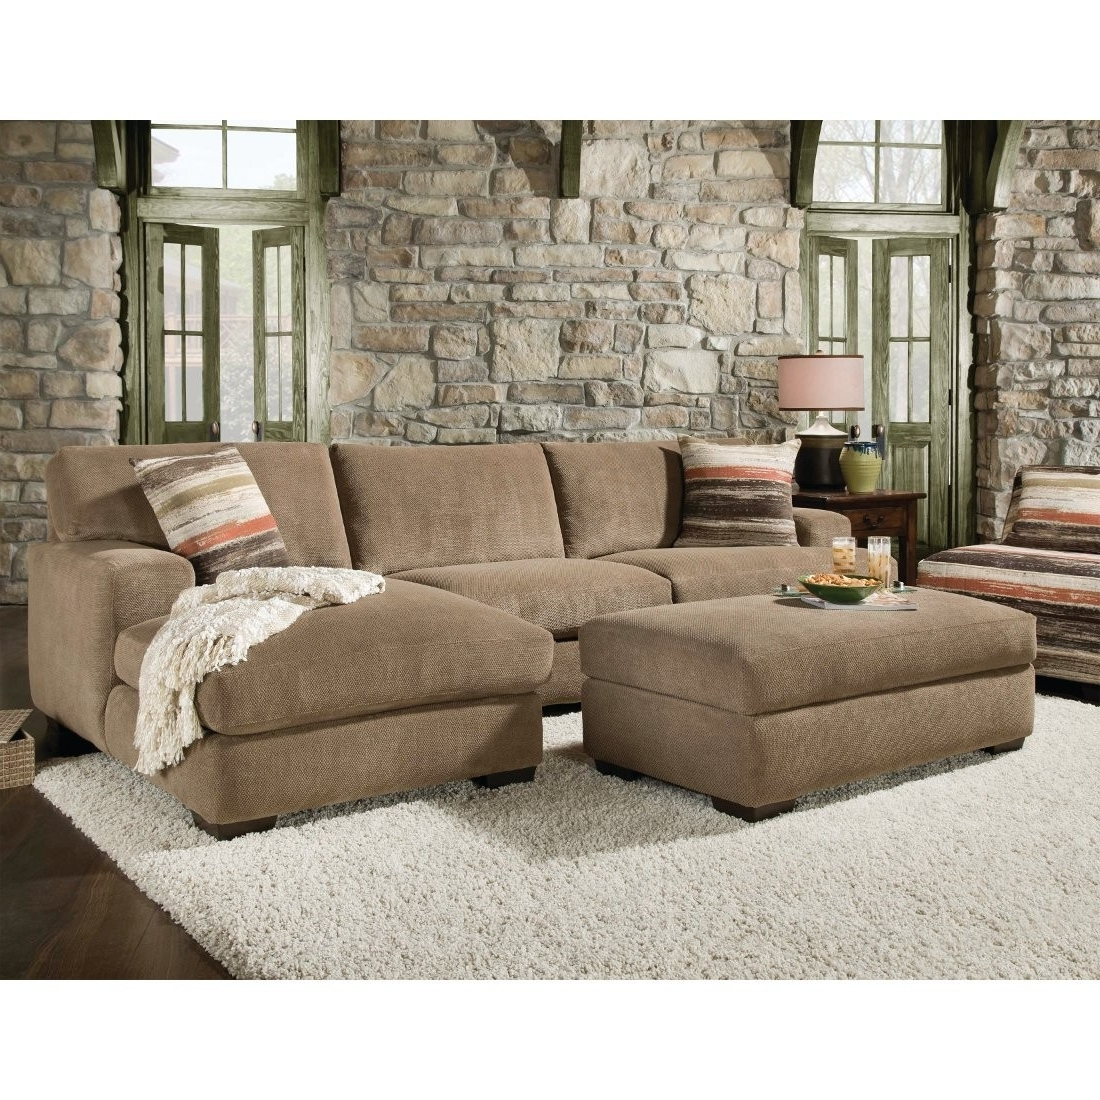 Latest Beautiful Sectional Sofa With Chaise And Ottoman Pictures For Sofas With Ottoman (View 15 of 20)